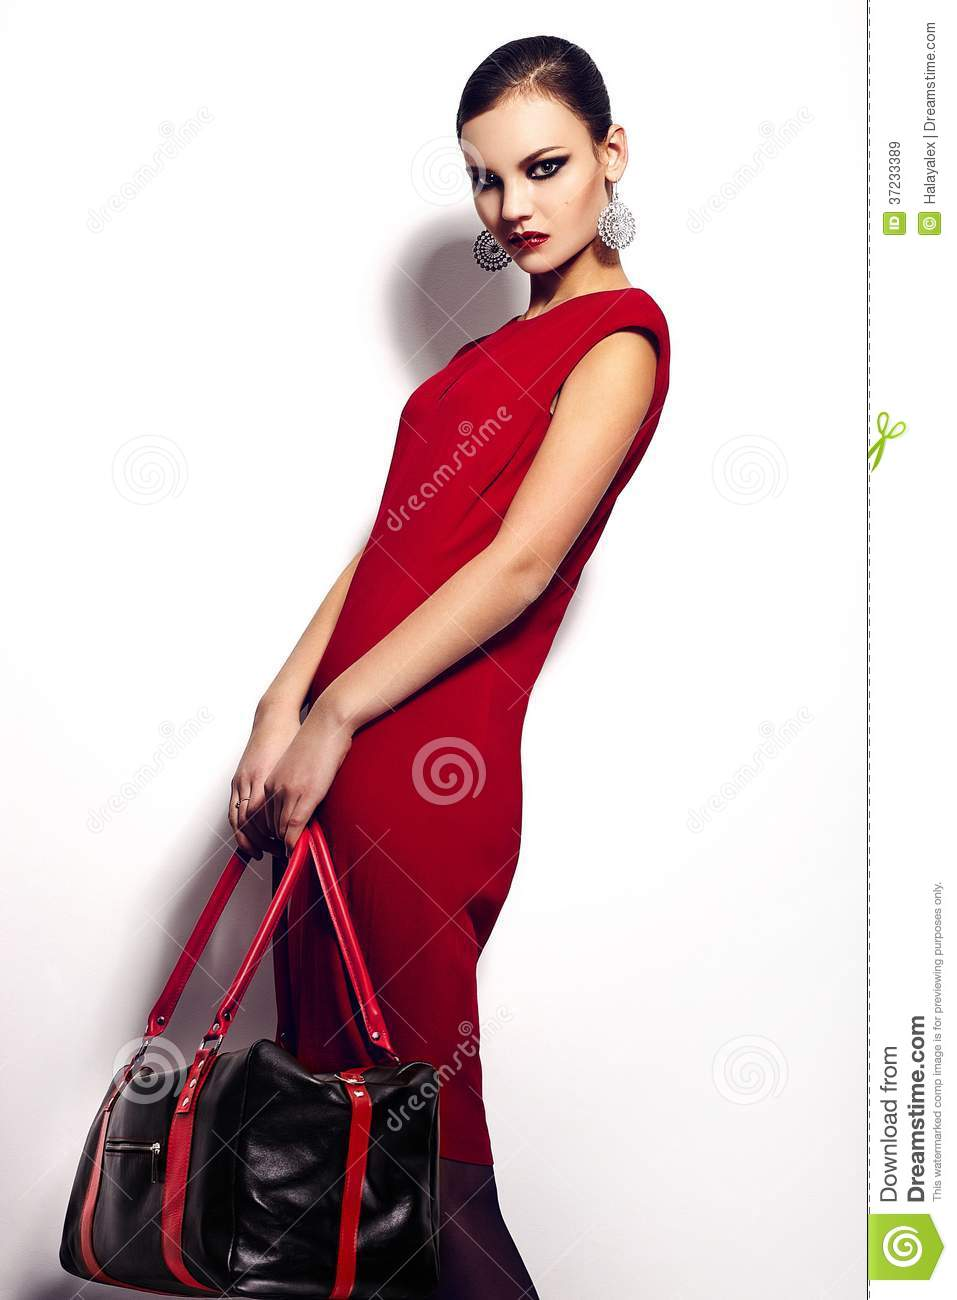 Glamor closeup portrait of beautiful stylish brunette Caucasian young woman model in red dress with black b